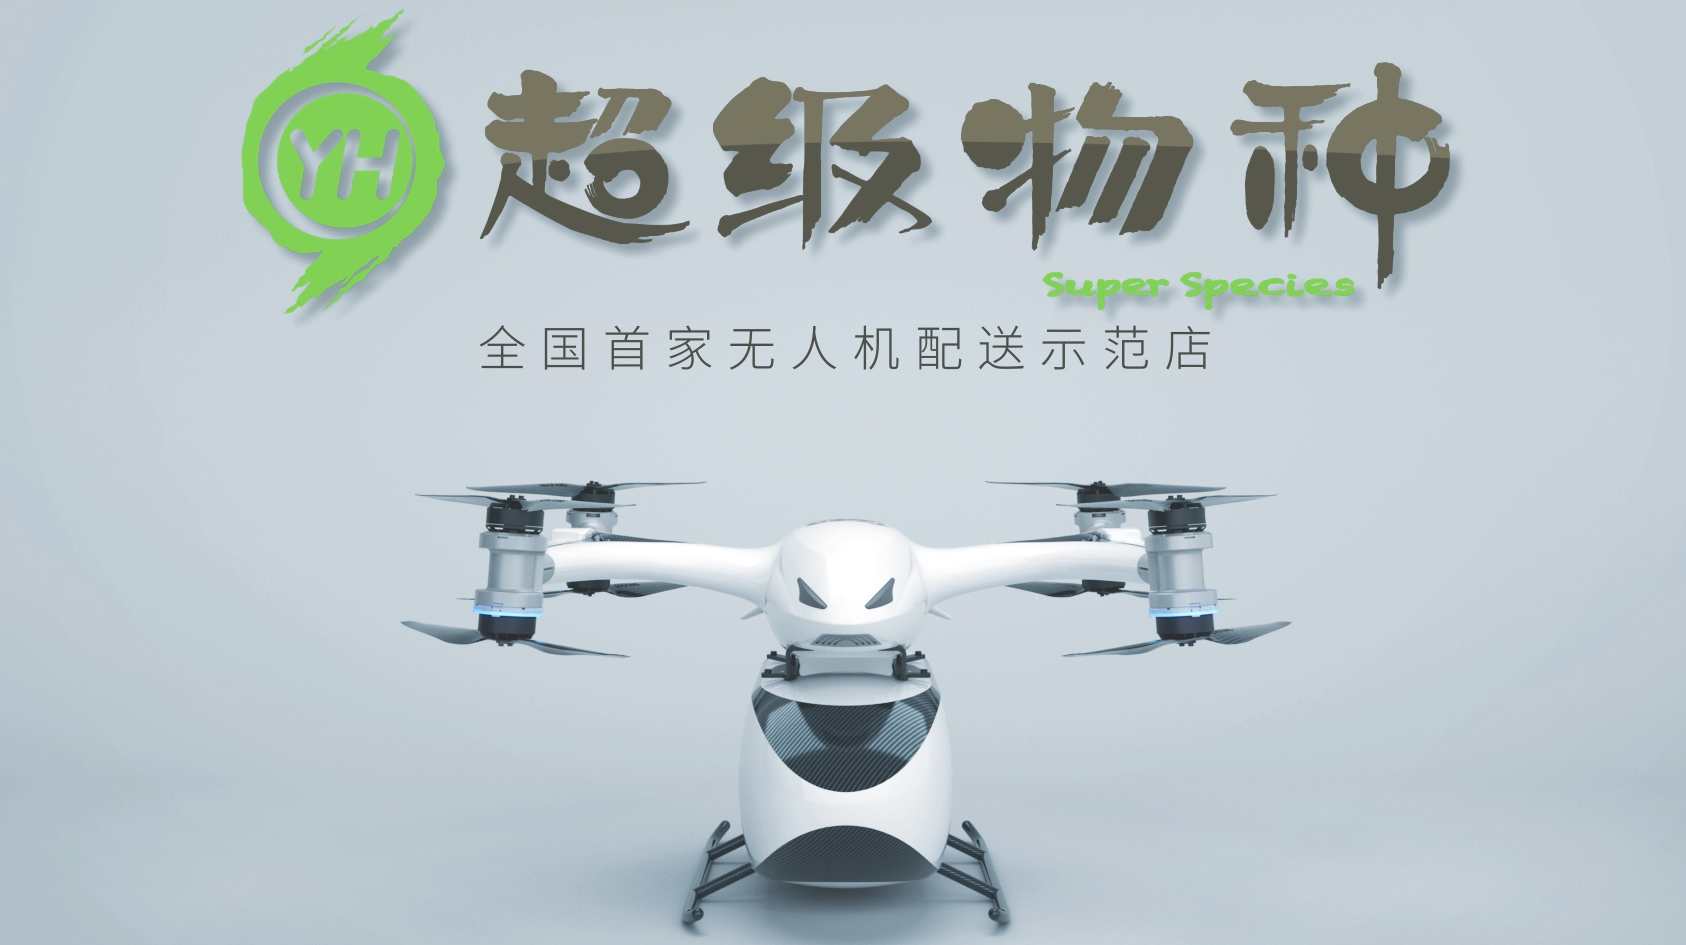 Food delivery by EHang Falcon UAV